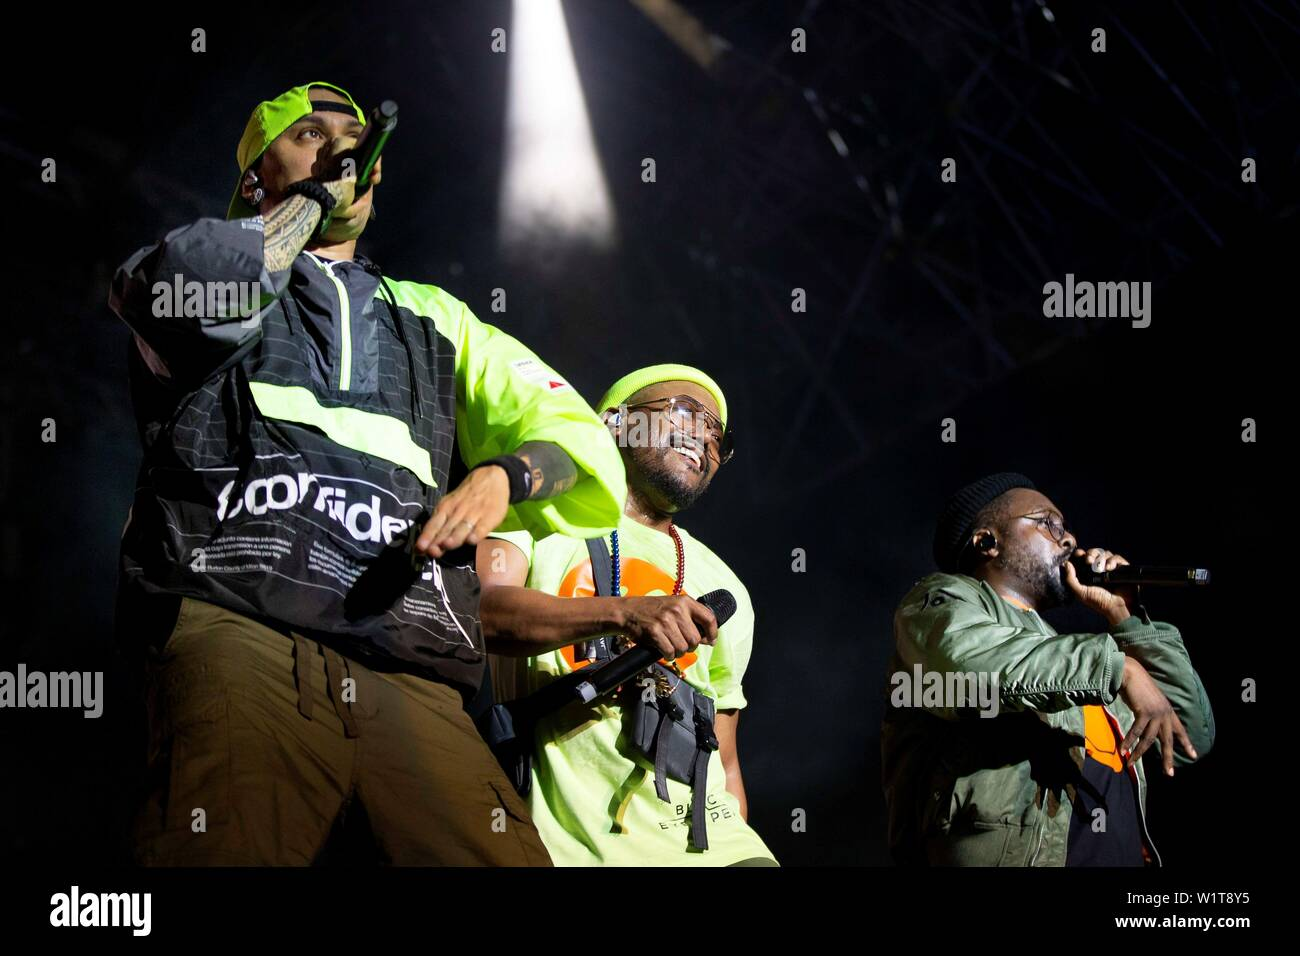 Barcelona, Spain. 3rd July 2019. Members of US hip hop band The Black Eyed Peas Taboo (L), Apl.de.ap (C) and Will.i.am (R) perform on stage during the band's concert at the Cruilla Music Festival in Barcelona, Spain, 03 July 2019. EFE/ Enric Fontcuberta Credit: EFE News Agency/Alamy Live News Stock Photo